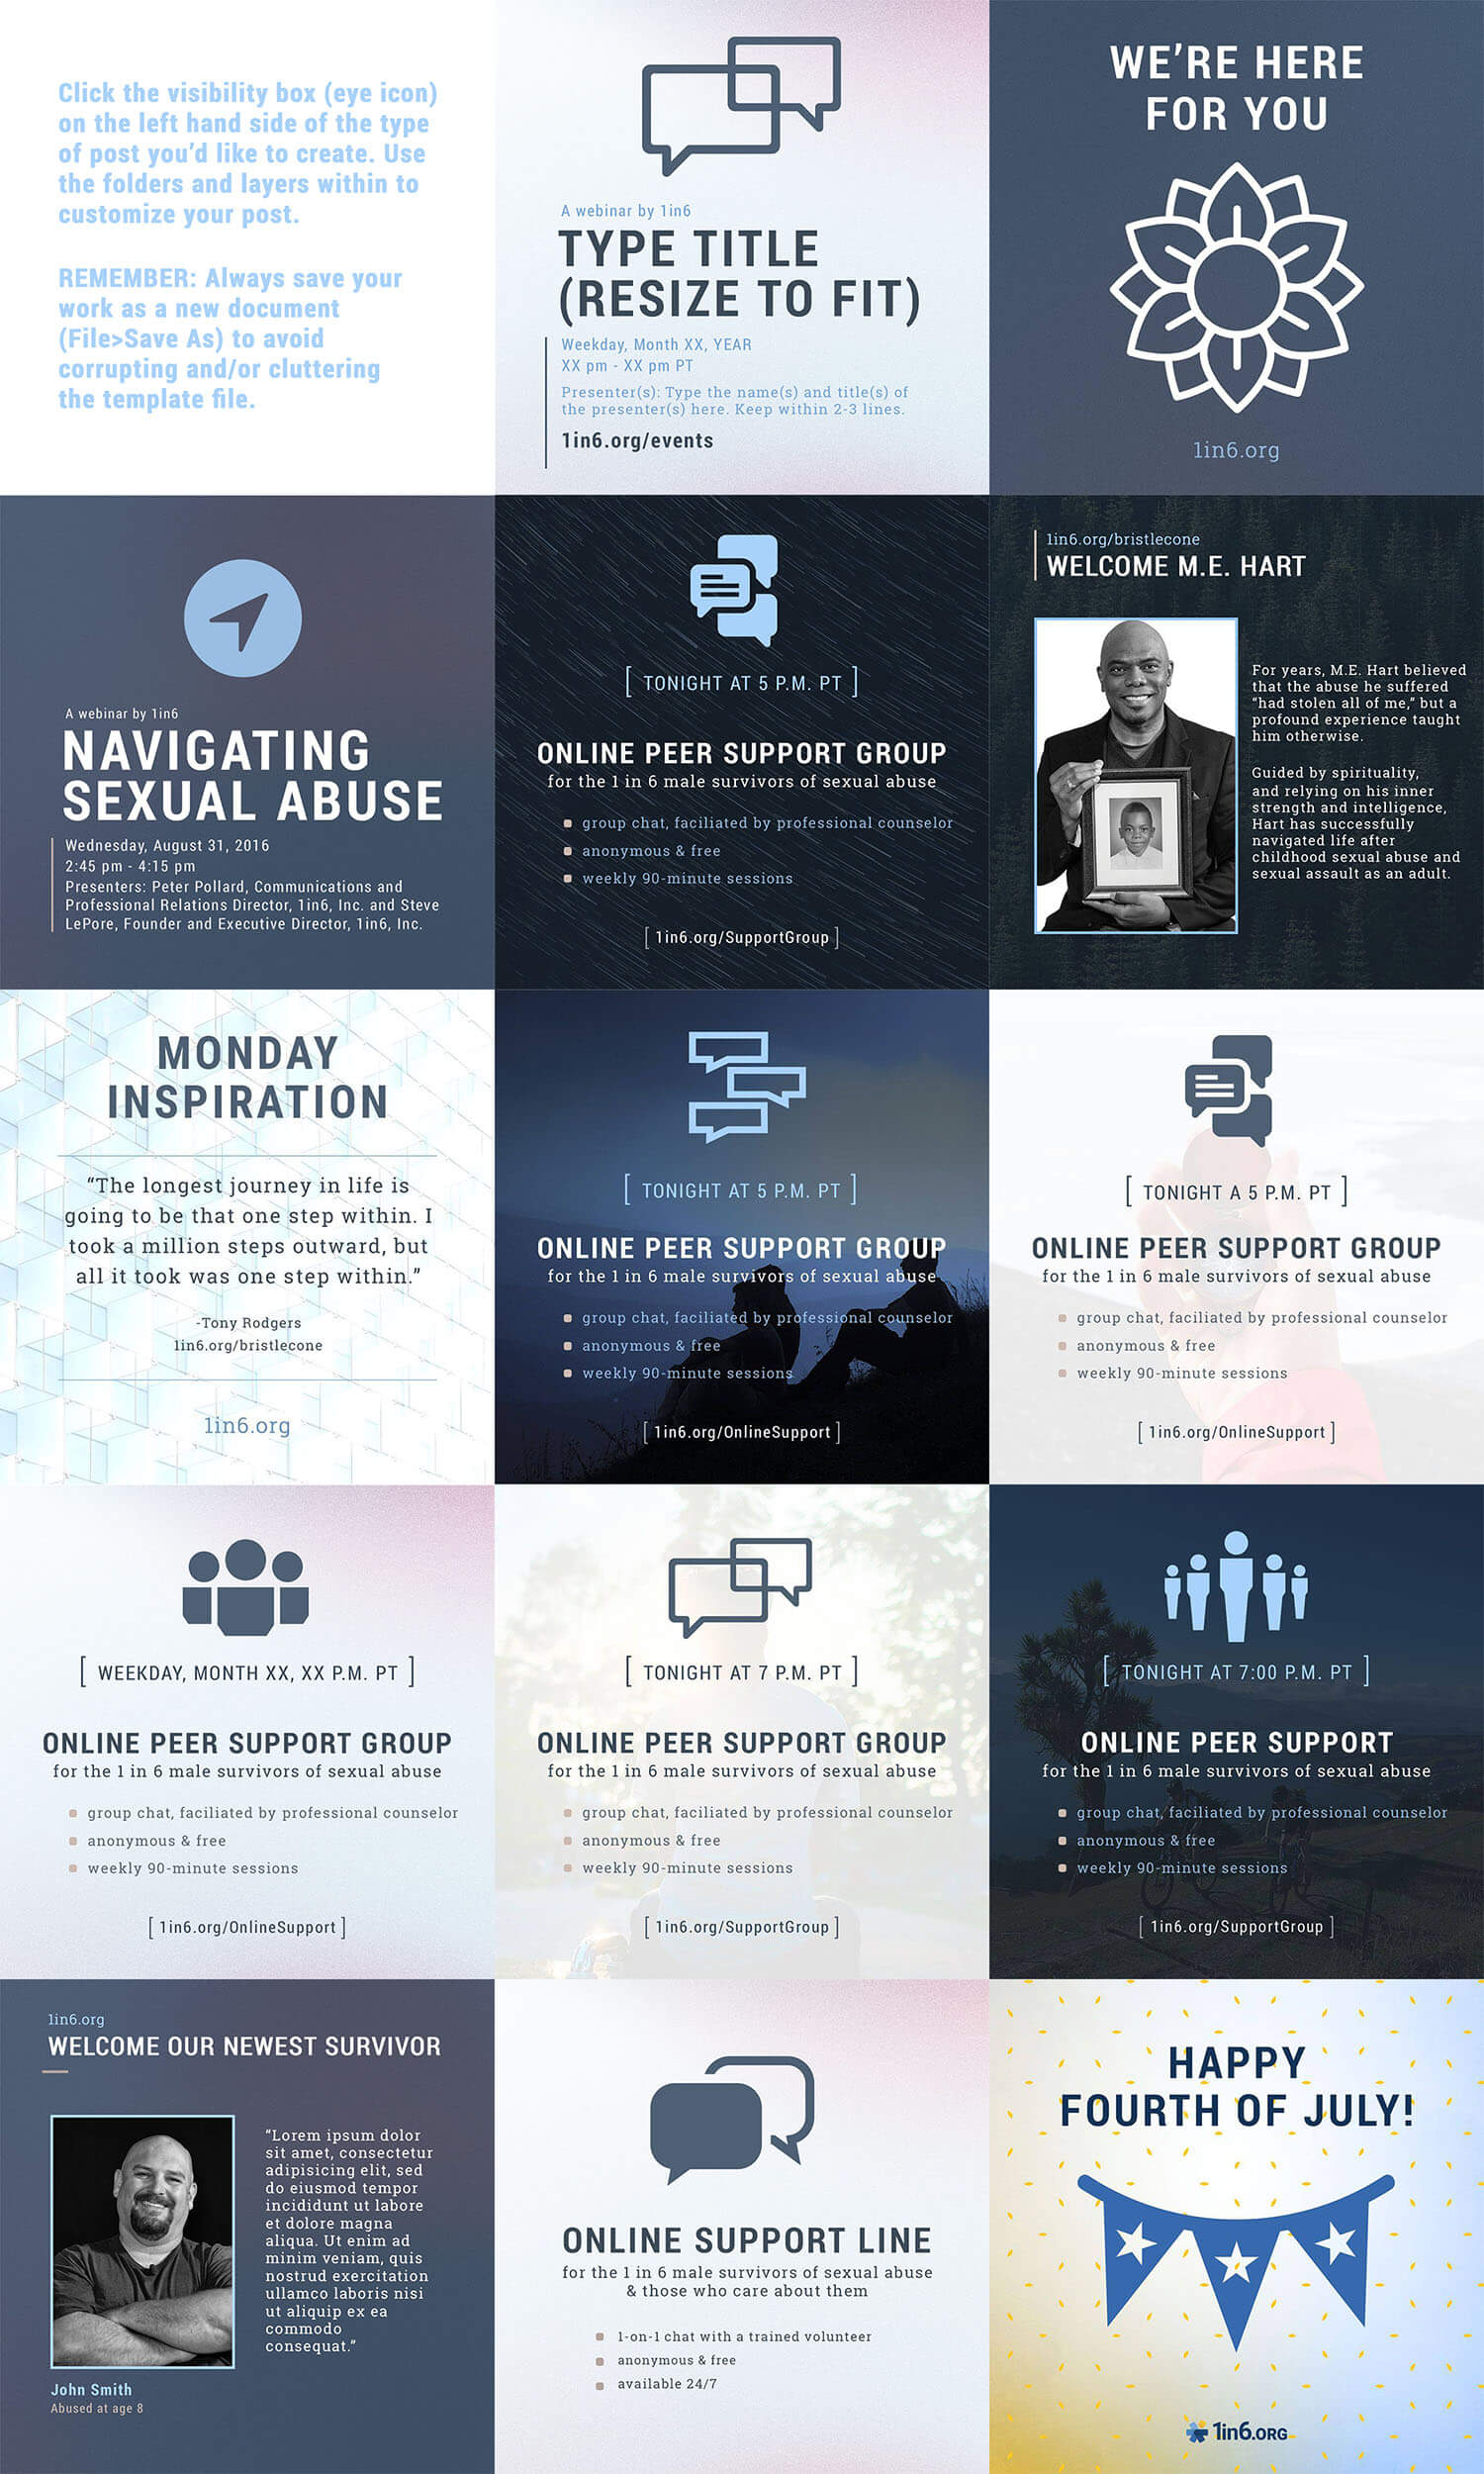 In an effort to give the non-profit the most bang for their buck, I built a robust social media template that could be configured by non-designs to create over 150,000 posts.